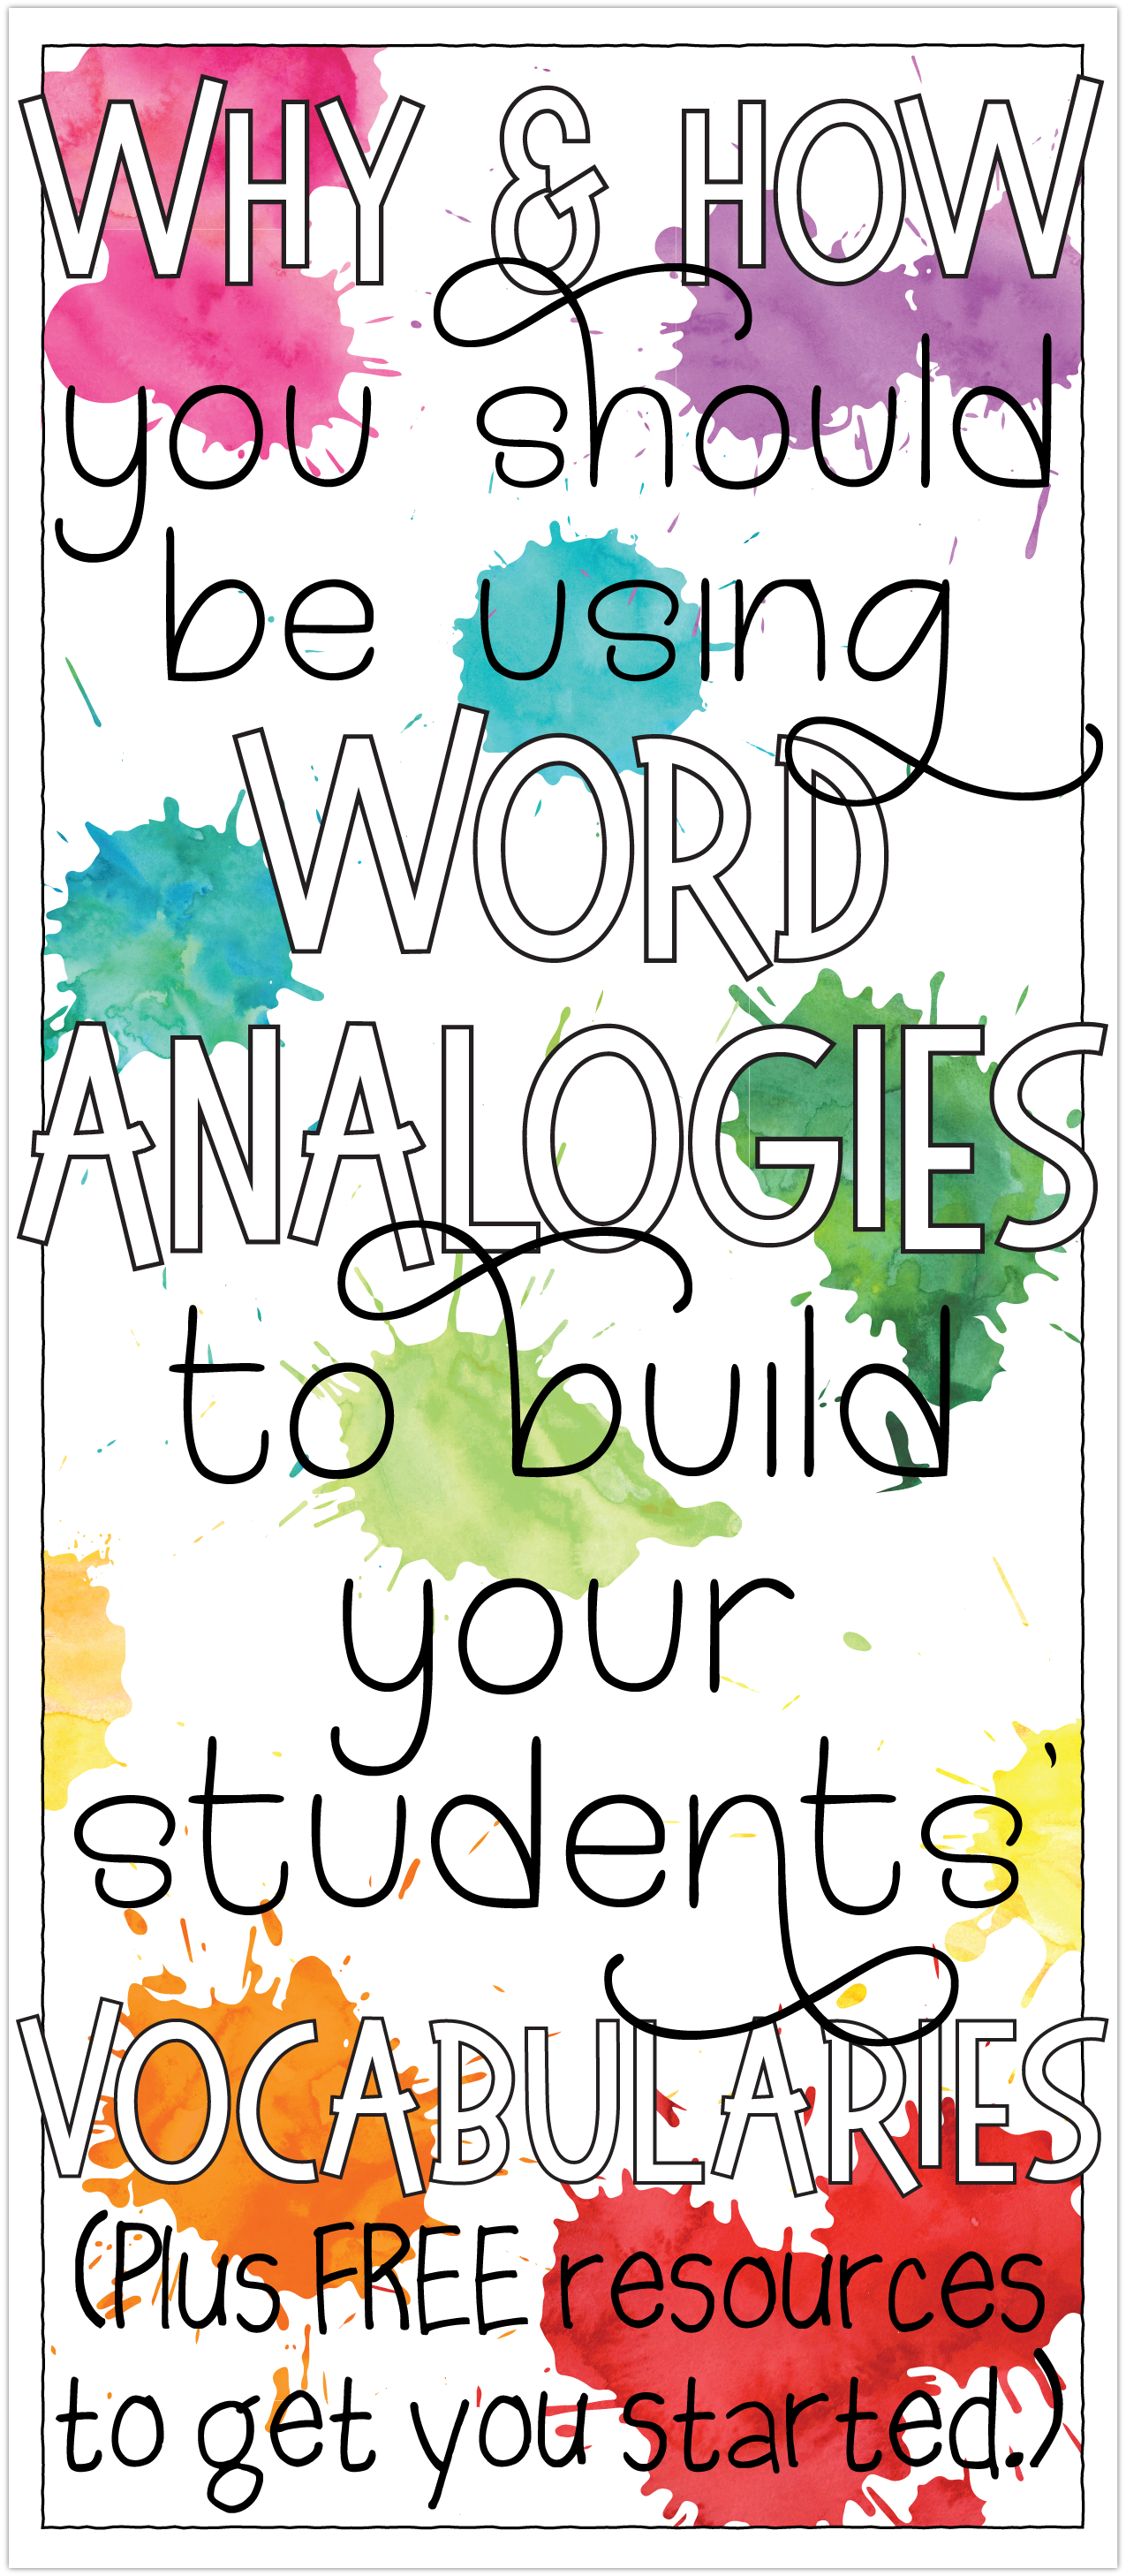 Build Vocabulary With Wordogies